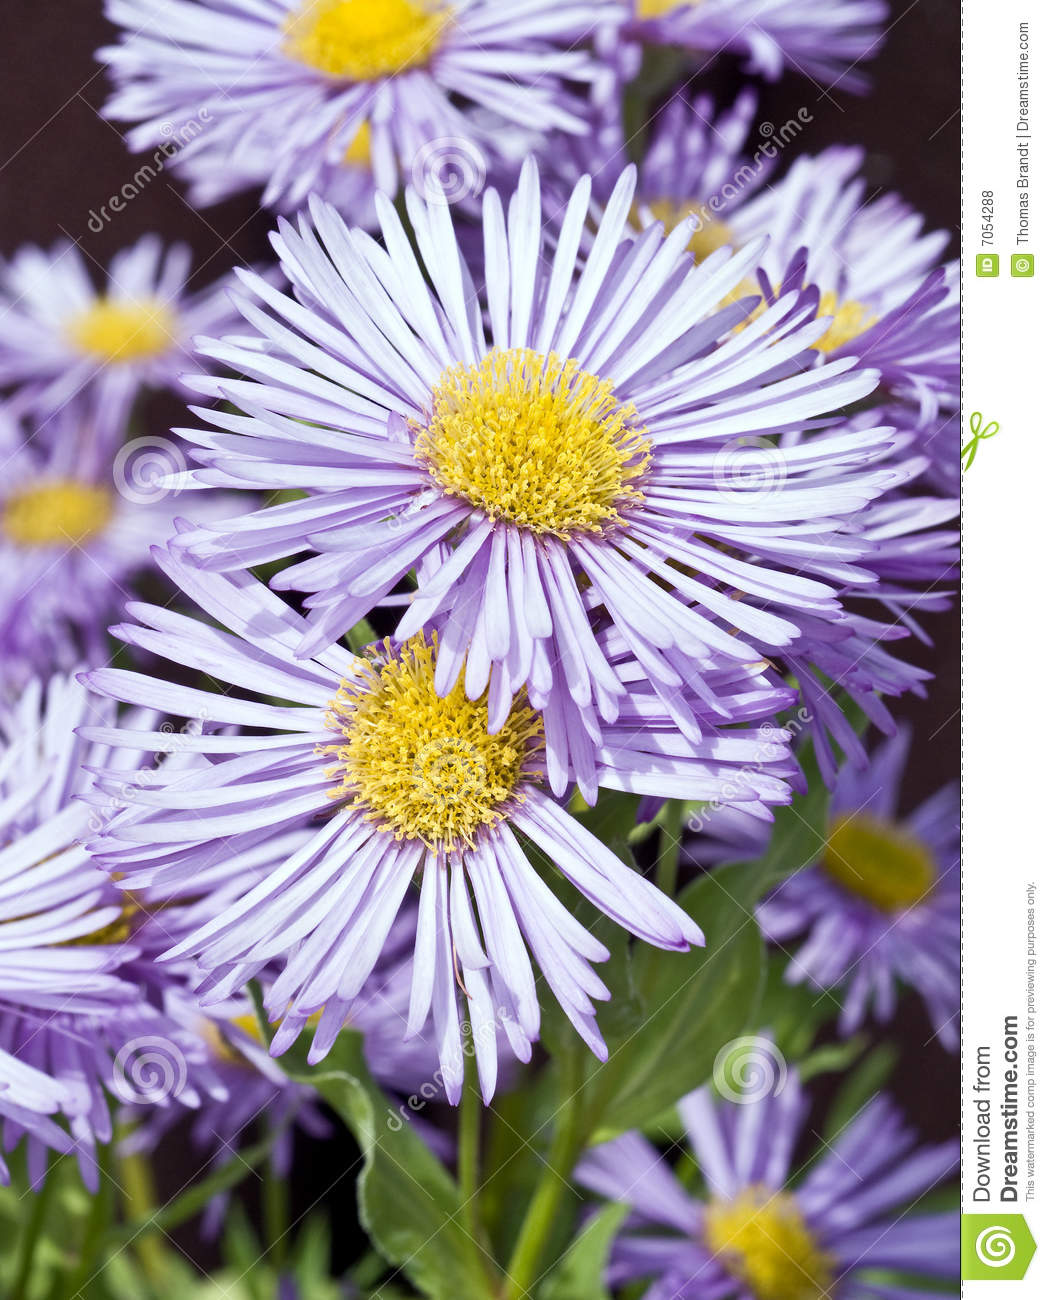 Lavender Blue Coloured Flowers In Bloom Stock Photo Image Of